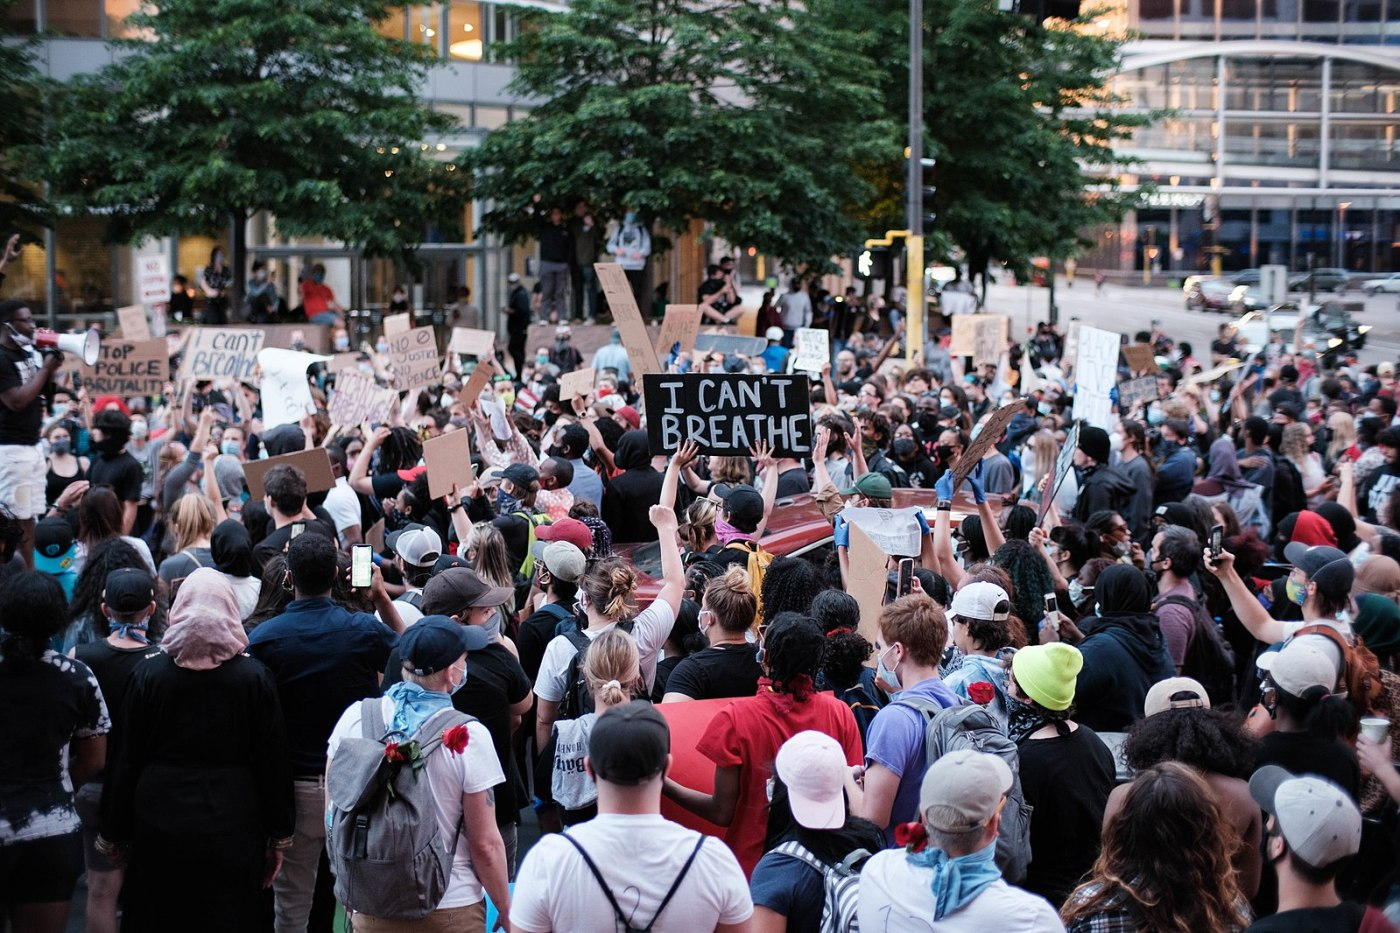 On May 28, 2020, in Minneapolis, a crowd protests the police murder of George Floyd. Image posted to Wikimedia Commons by Flickr user Dan Aasland.